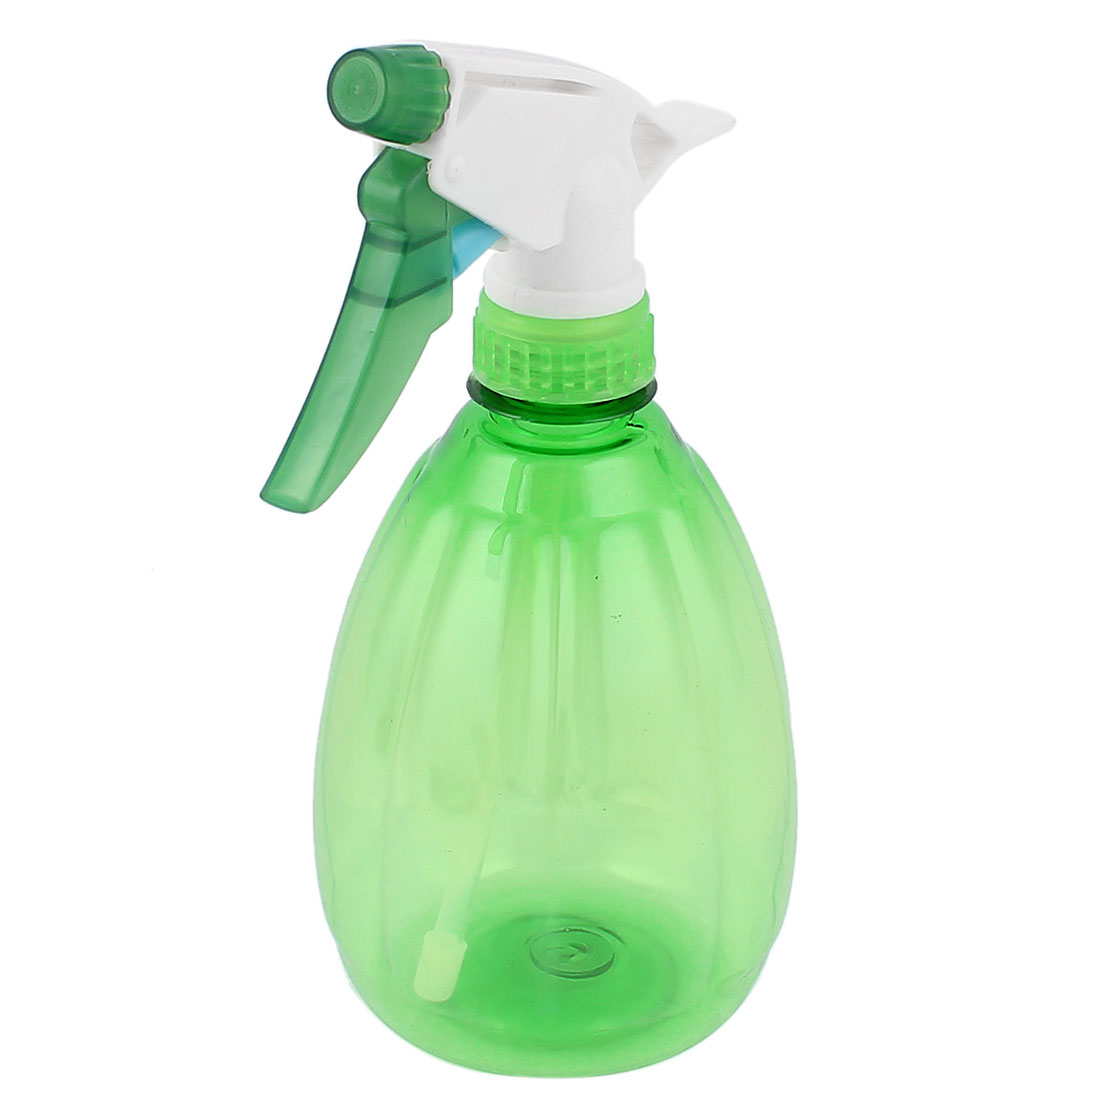 Water Bottle Nozzle: UXCELL Plastic Nozzle Head Water Sprayer Trigger Spray